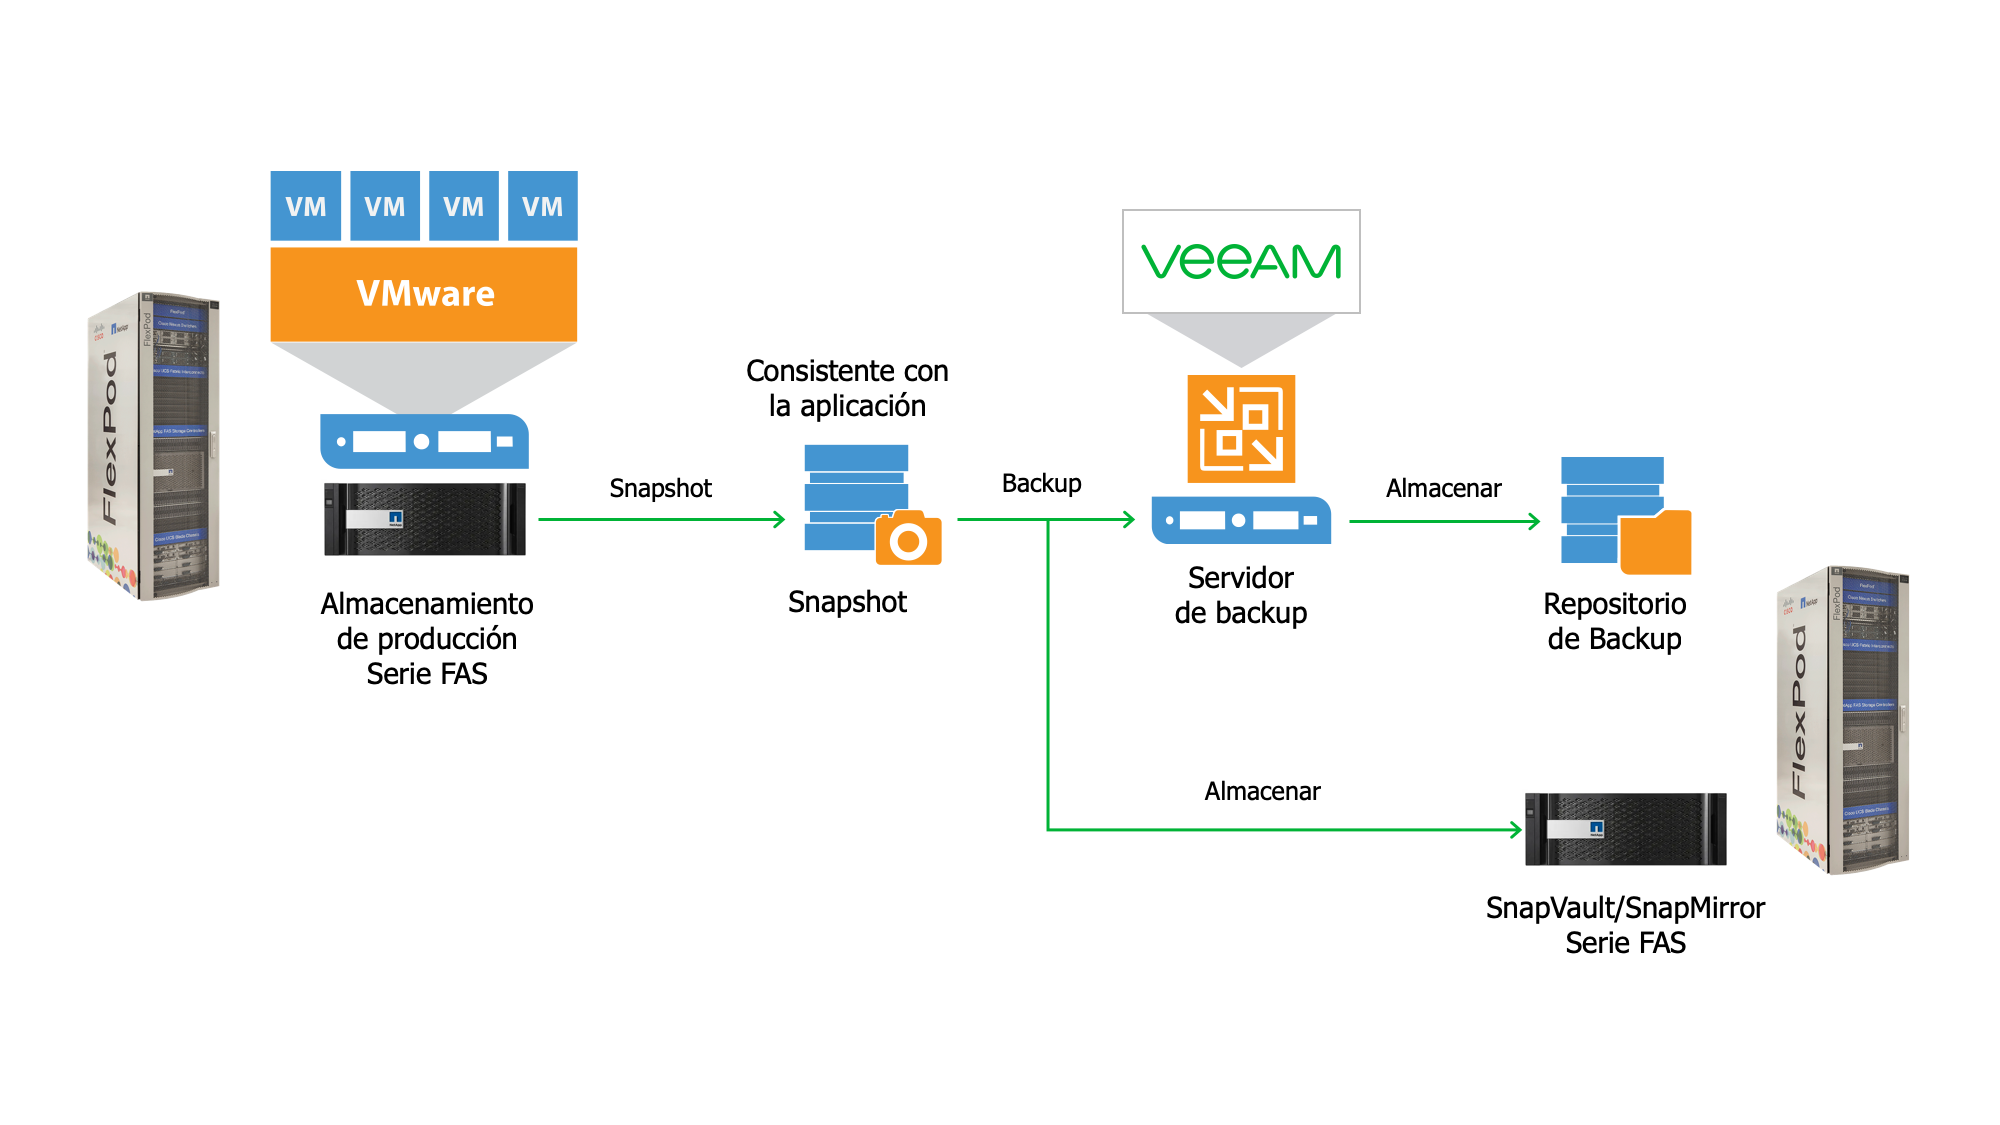 netapp-veeam-backup-with-flexpod_es-lat.png